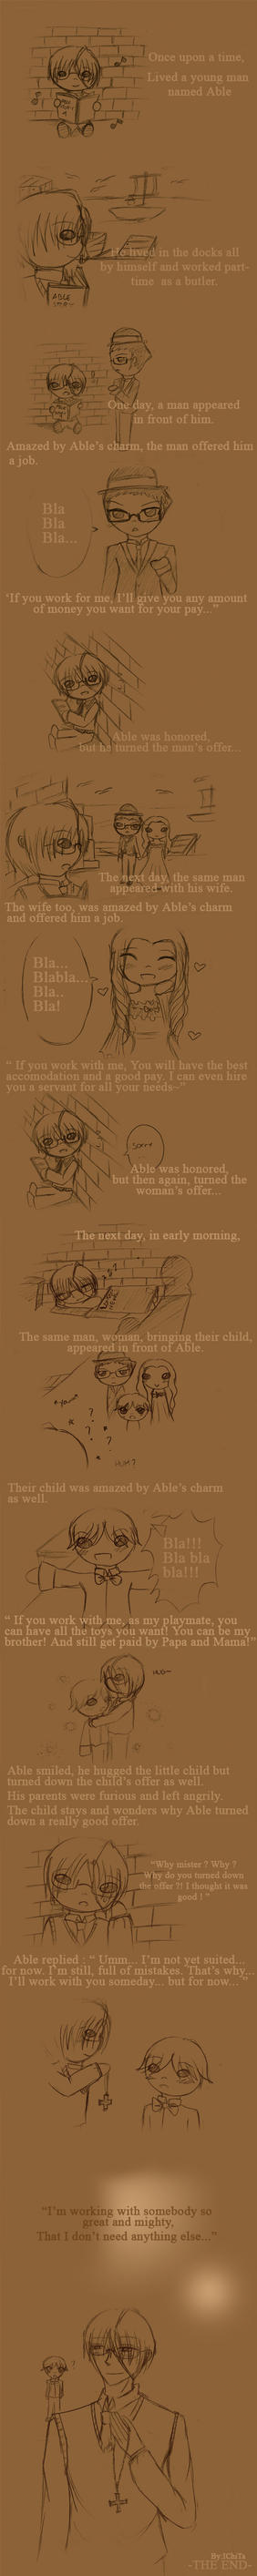 SA-Able Story by IChiTa--WiYa